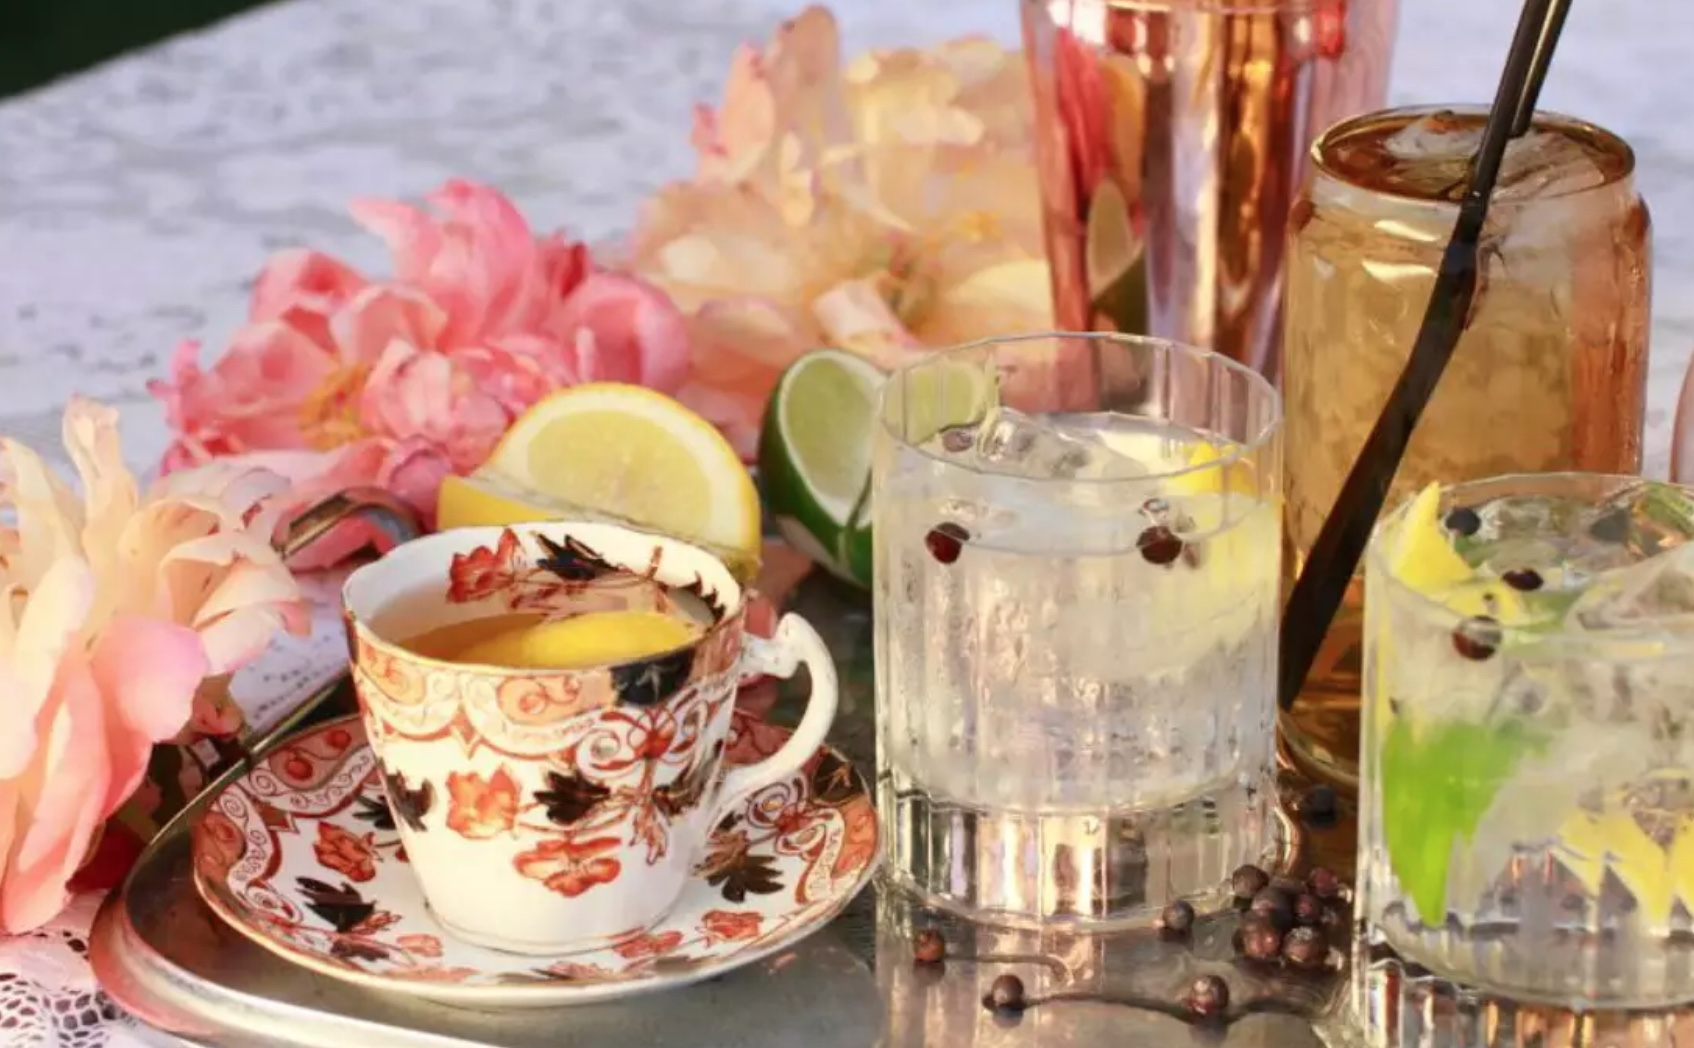 - WHERE TO GET THE BEST G&TS IN SYDNEY